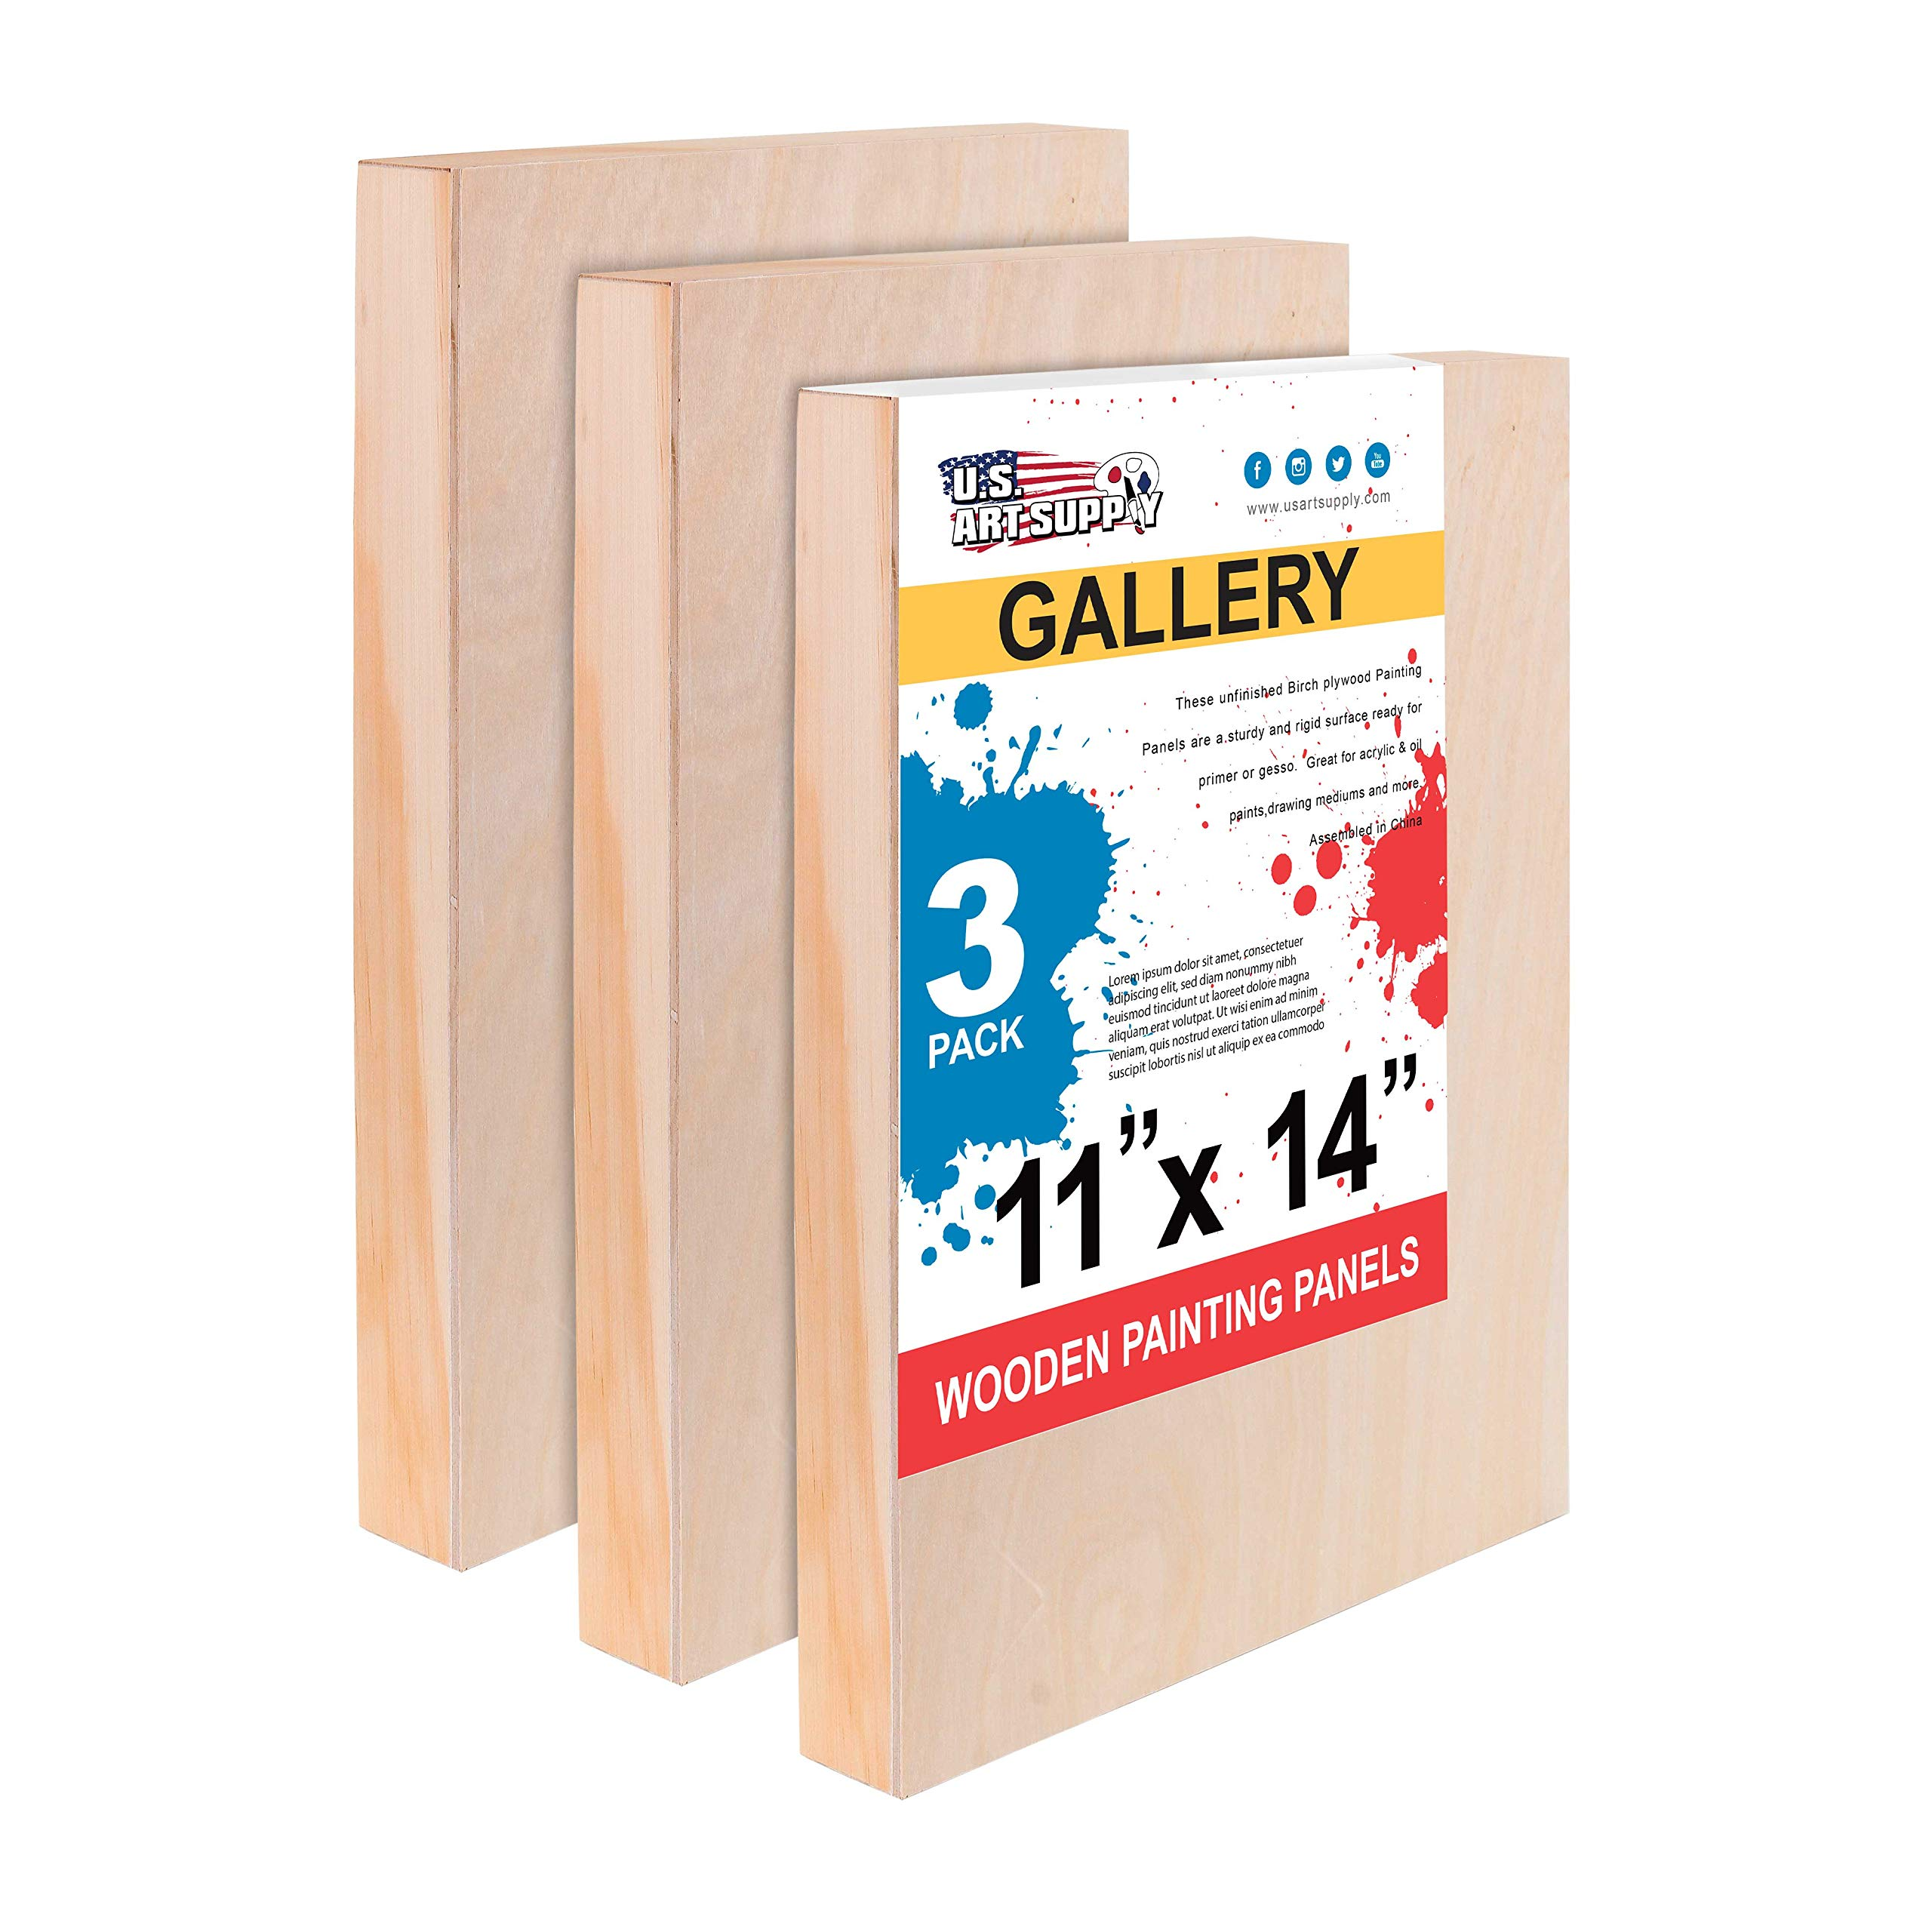 U.S. Art Supply 11'' x 14'' Birch Wood Paint Pouring Panel Boards, Gallery 1-1/2'' Deep Cradle (Pack of 3) - Artist Depth Wooden Wall Canvases - Painting Mixed-Media Craft, Acrylic, Oil, Encaustic by U.S. Art Supply